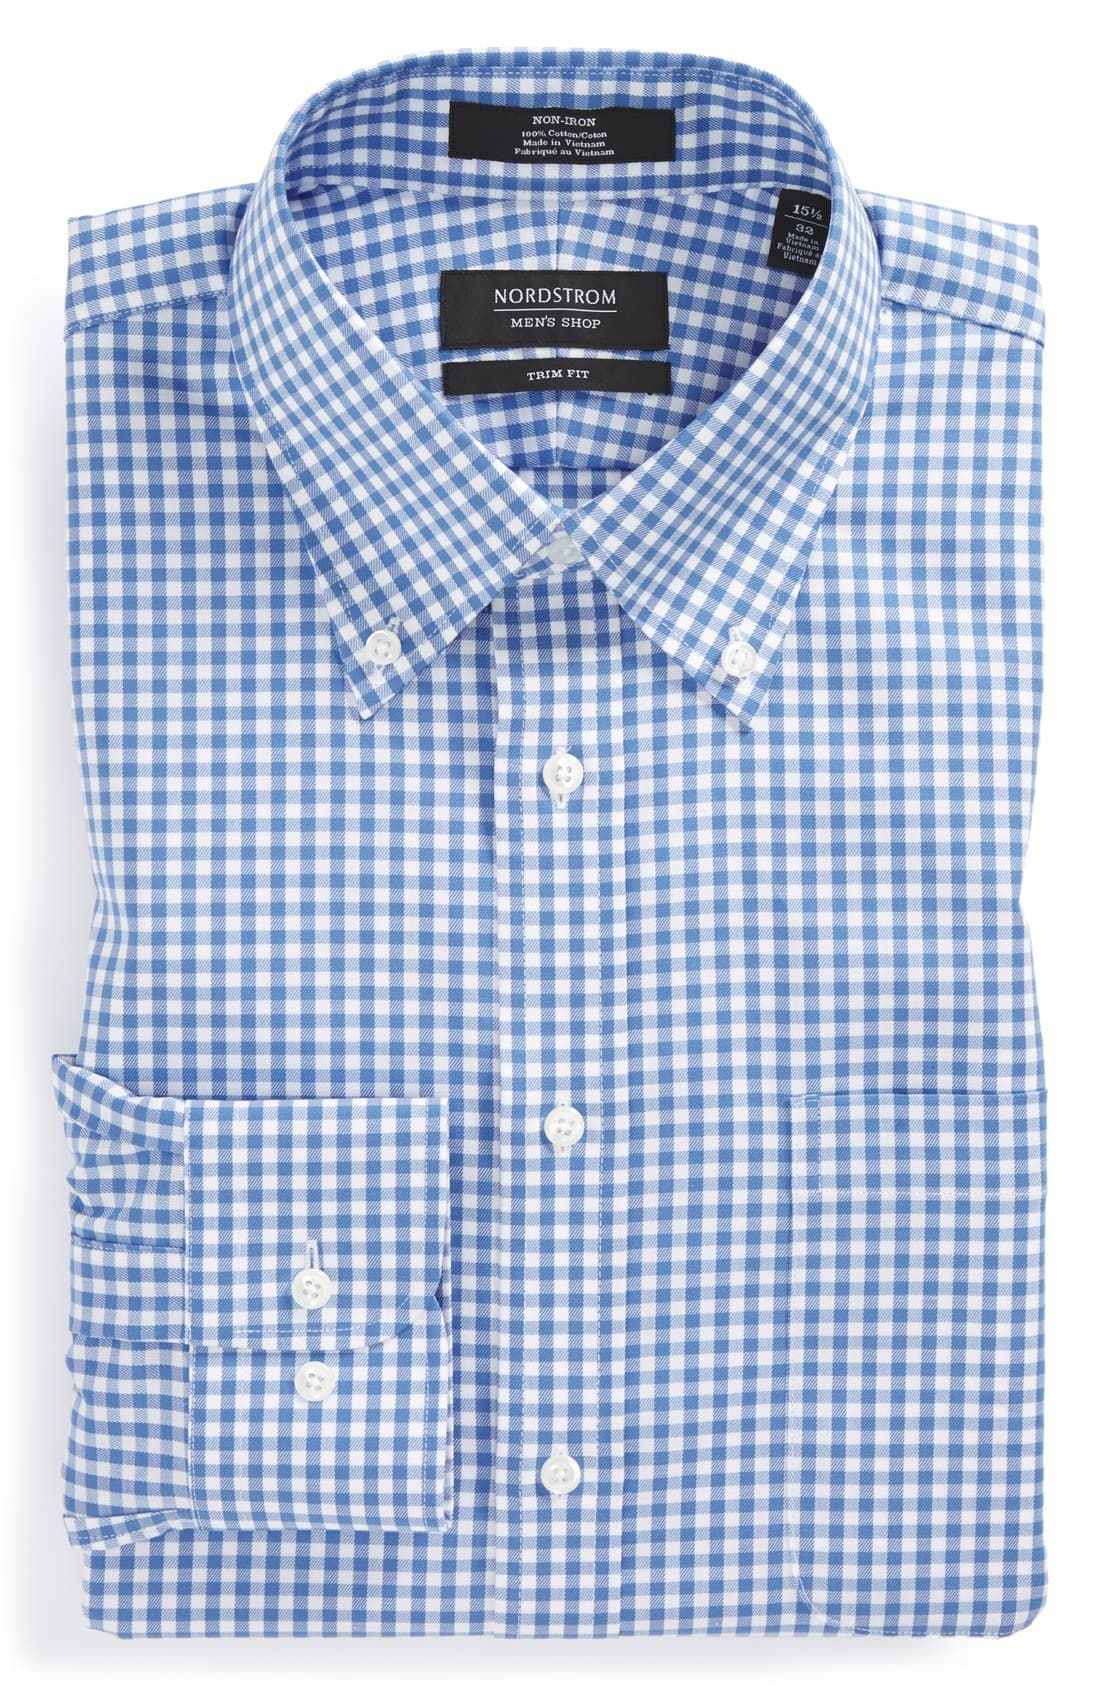 Garderobe Vintage Amazon Nordstrom Men S Shop Trim Fit Non Iron Gingham Dress Shirt